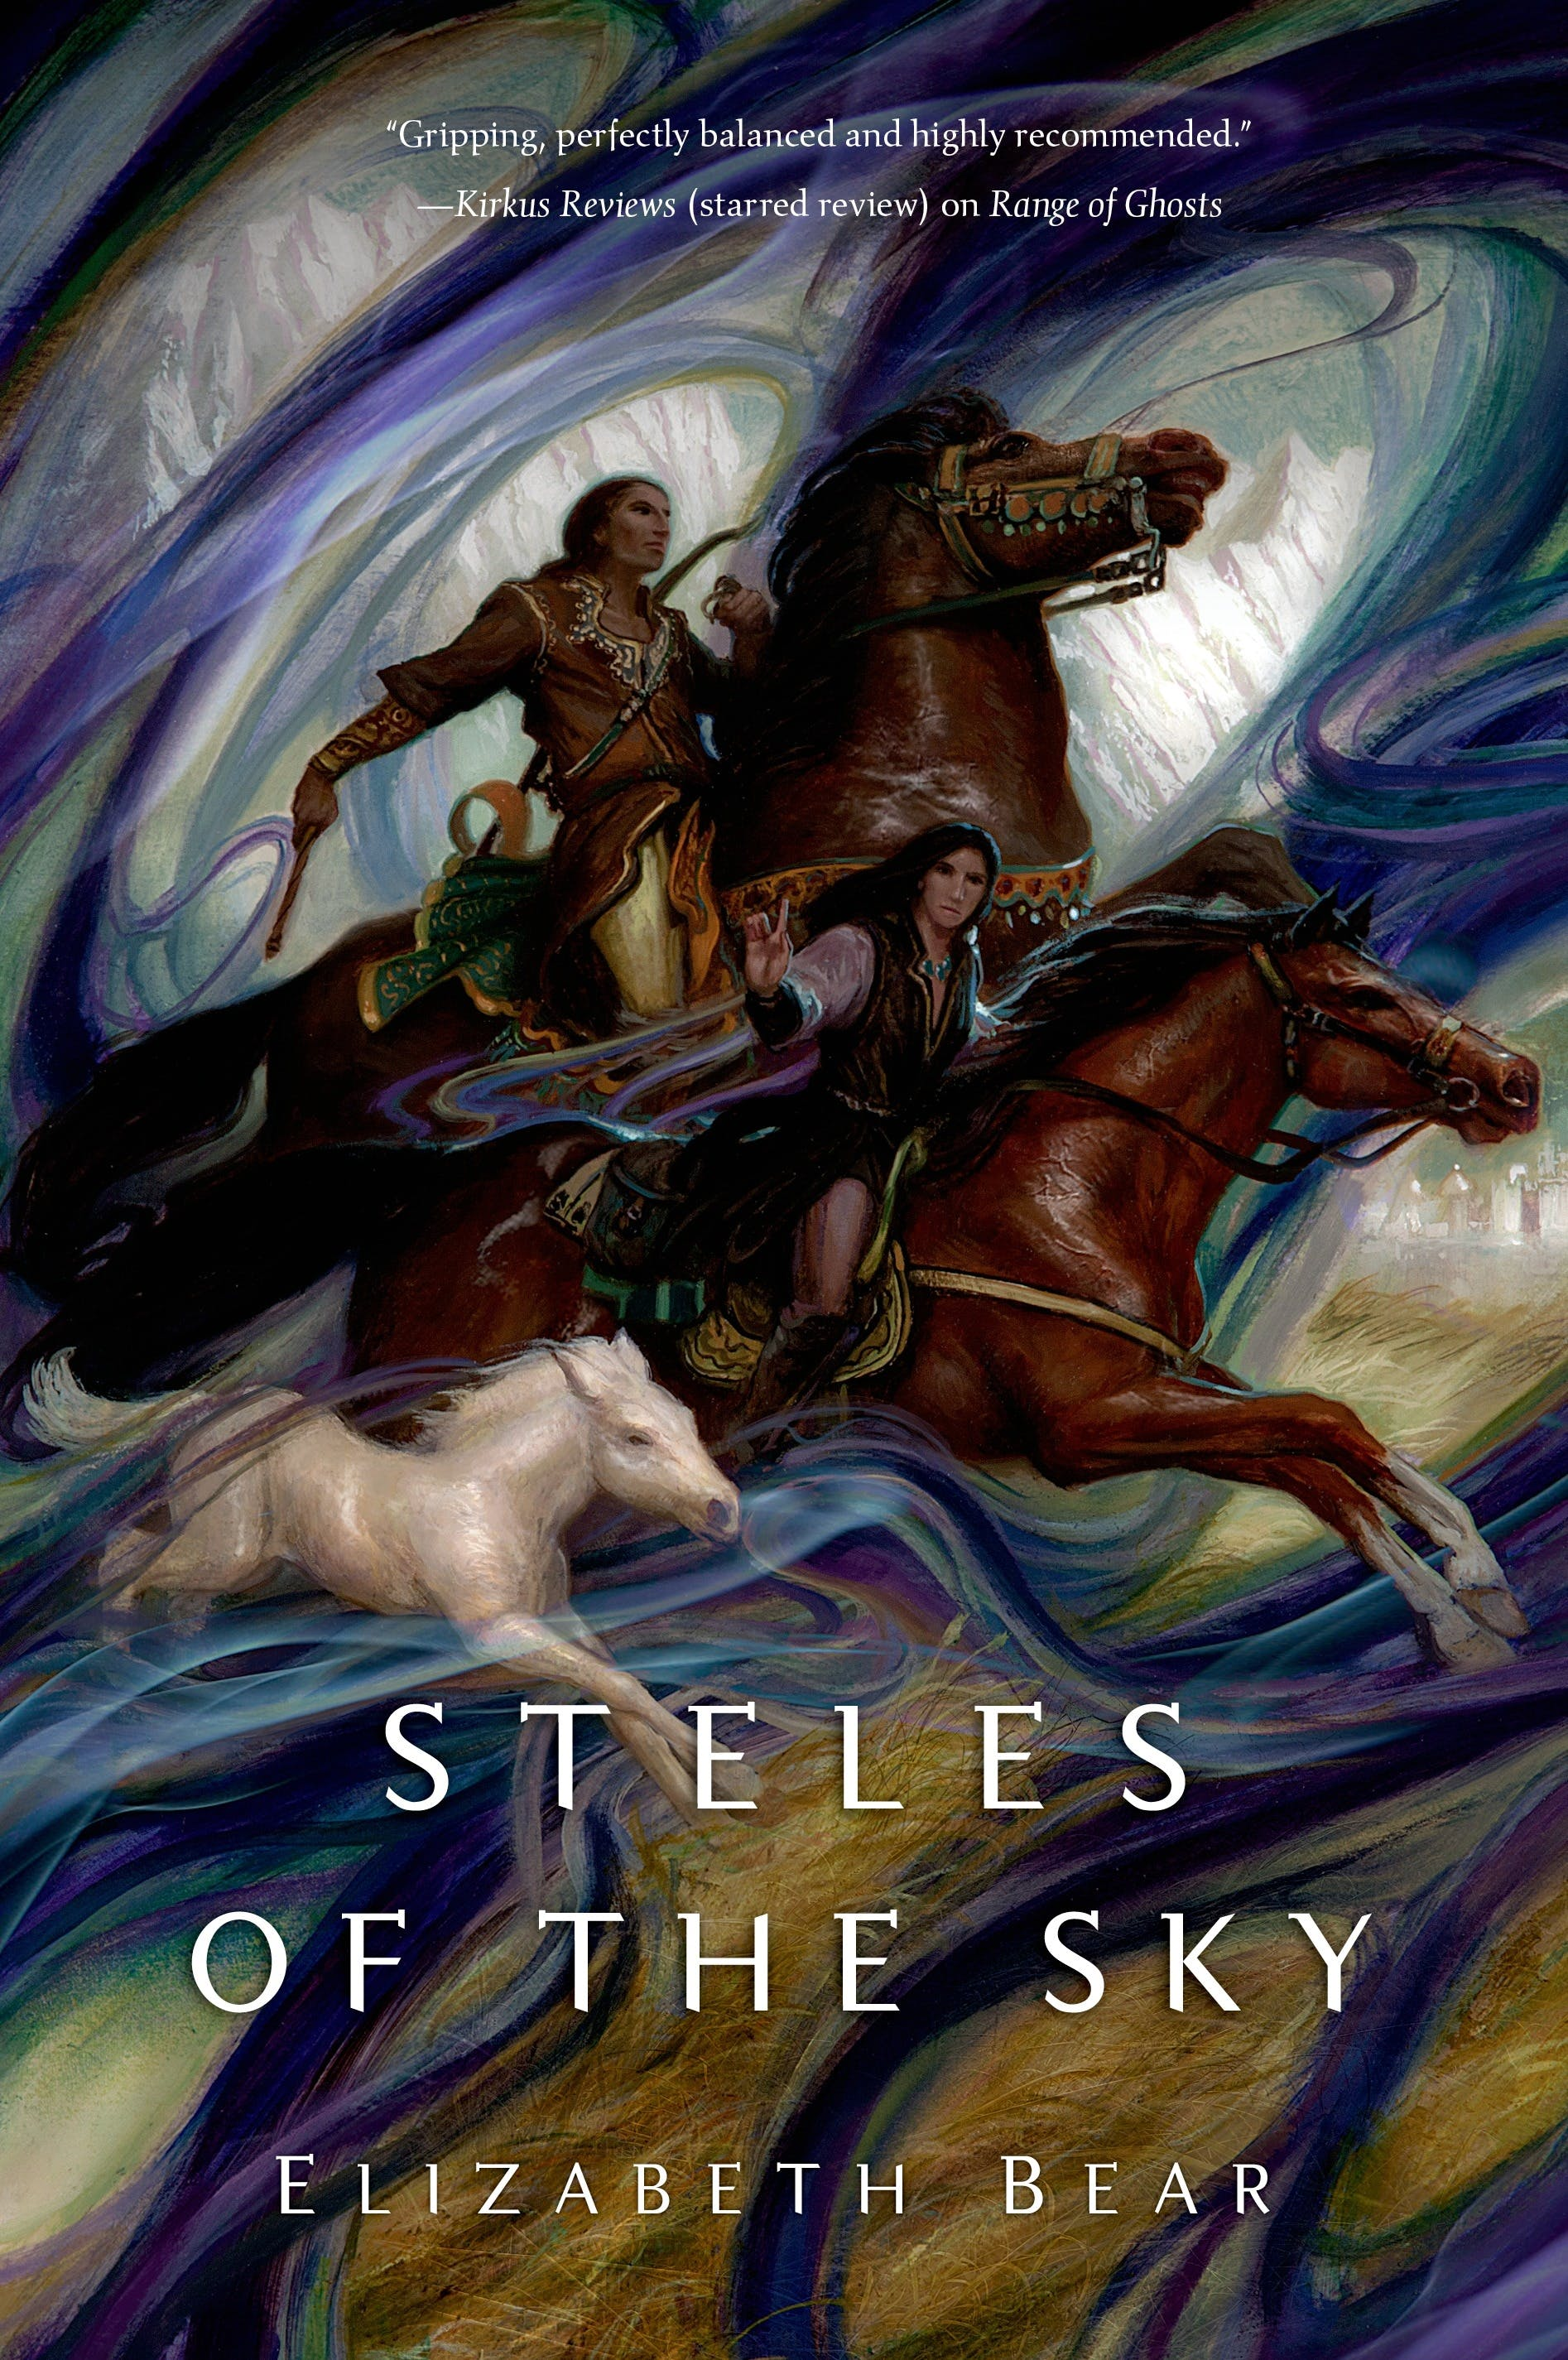 Image of Steles of the Sky